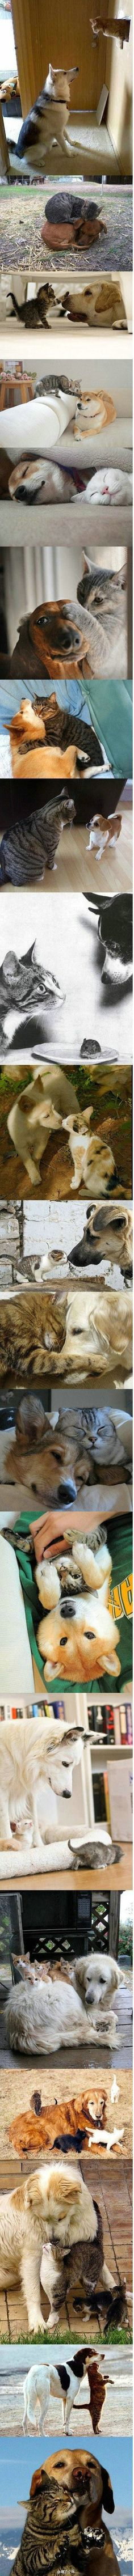 ♥ a cat and a dog